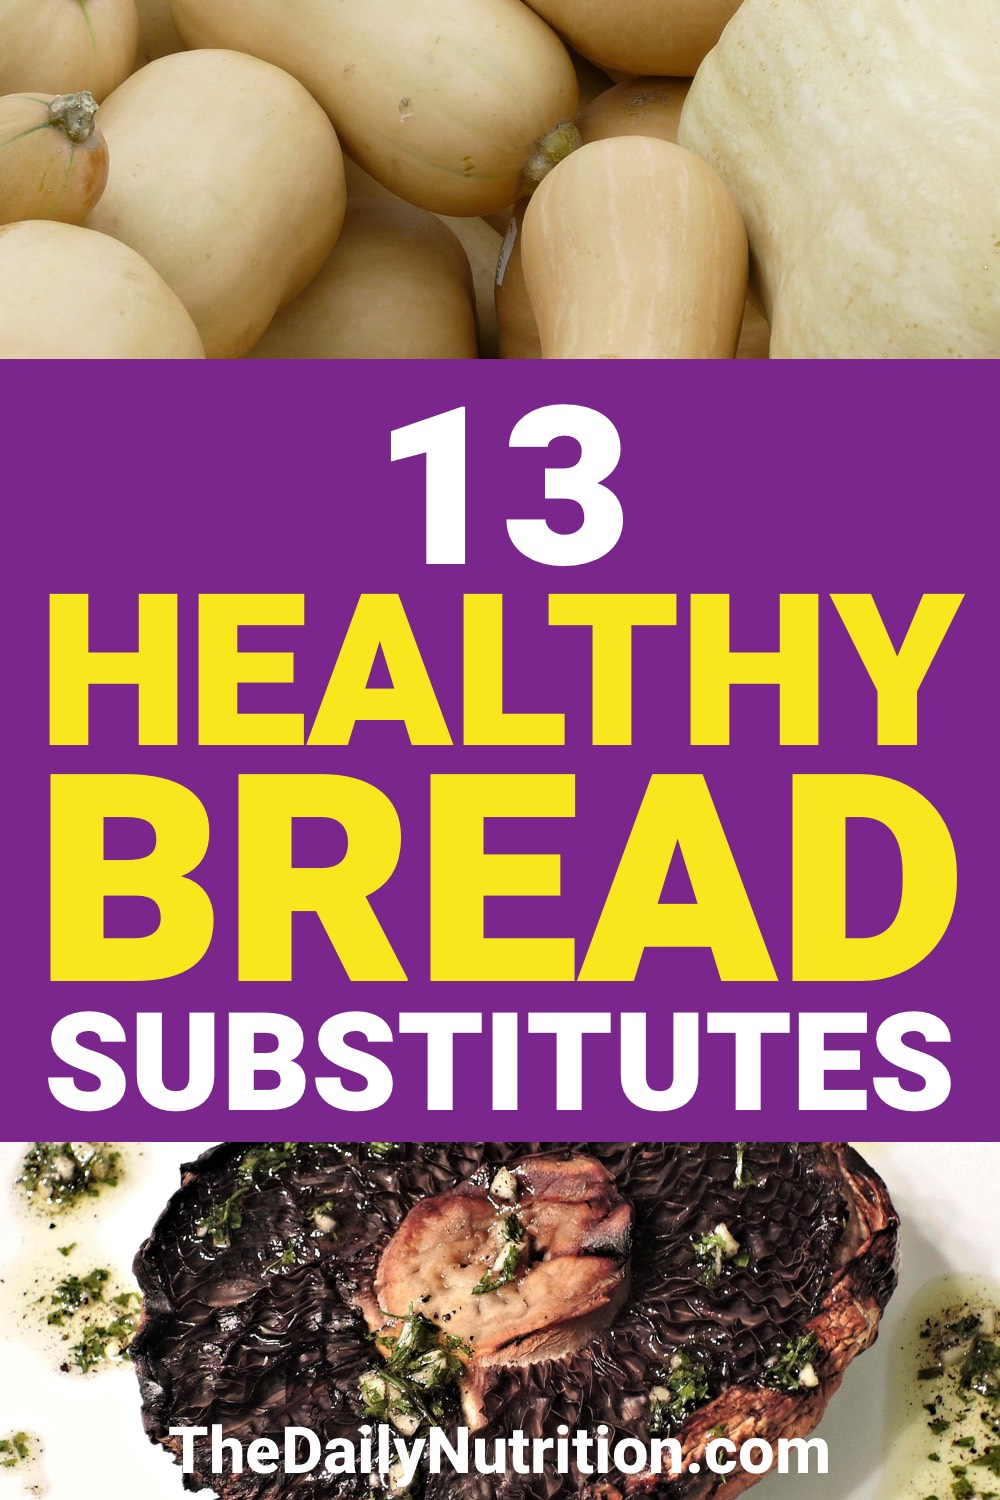 Finding a good bread substitute isn't difficult. Here are 13 bread alternatives that everyone will love.